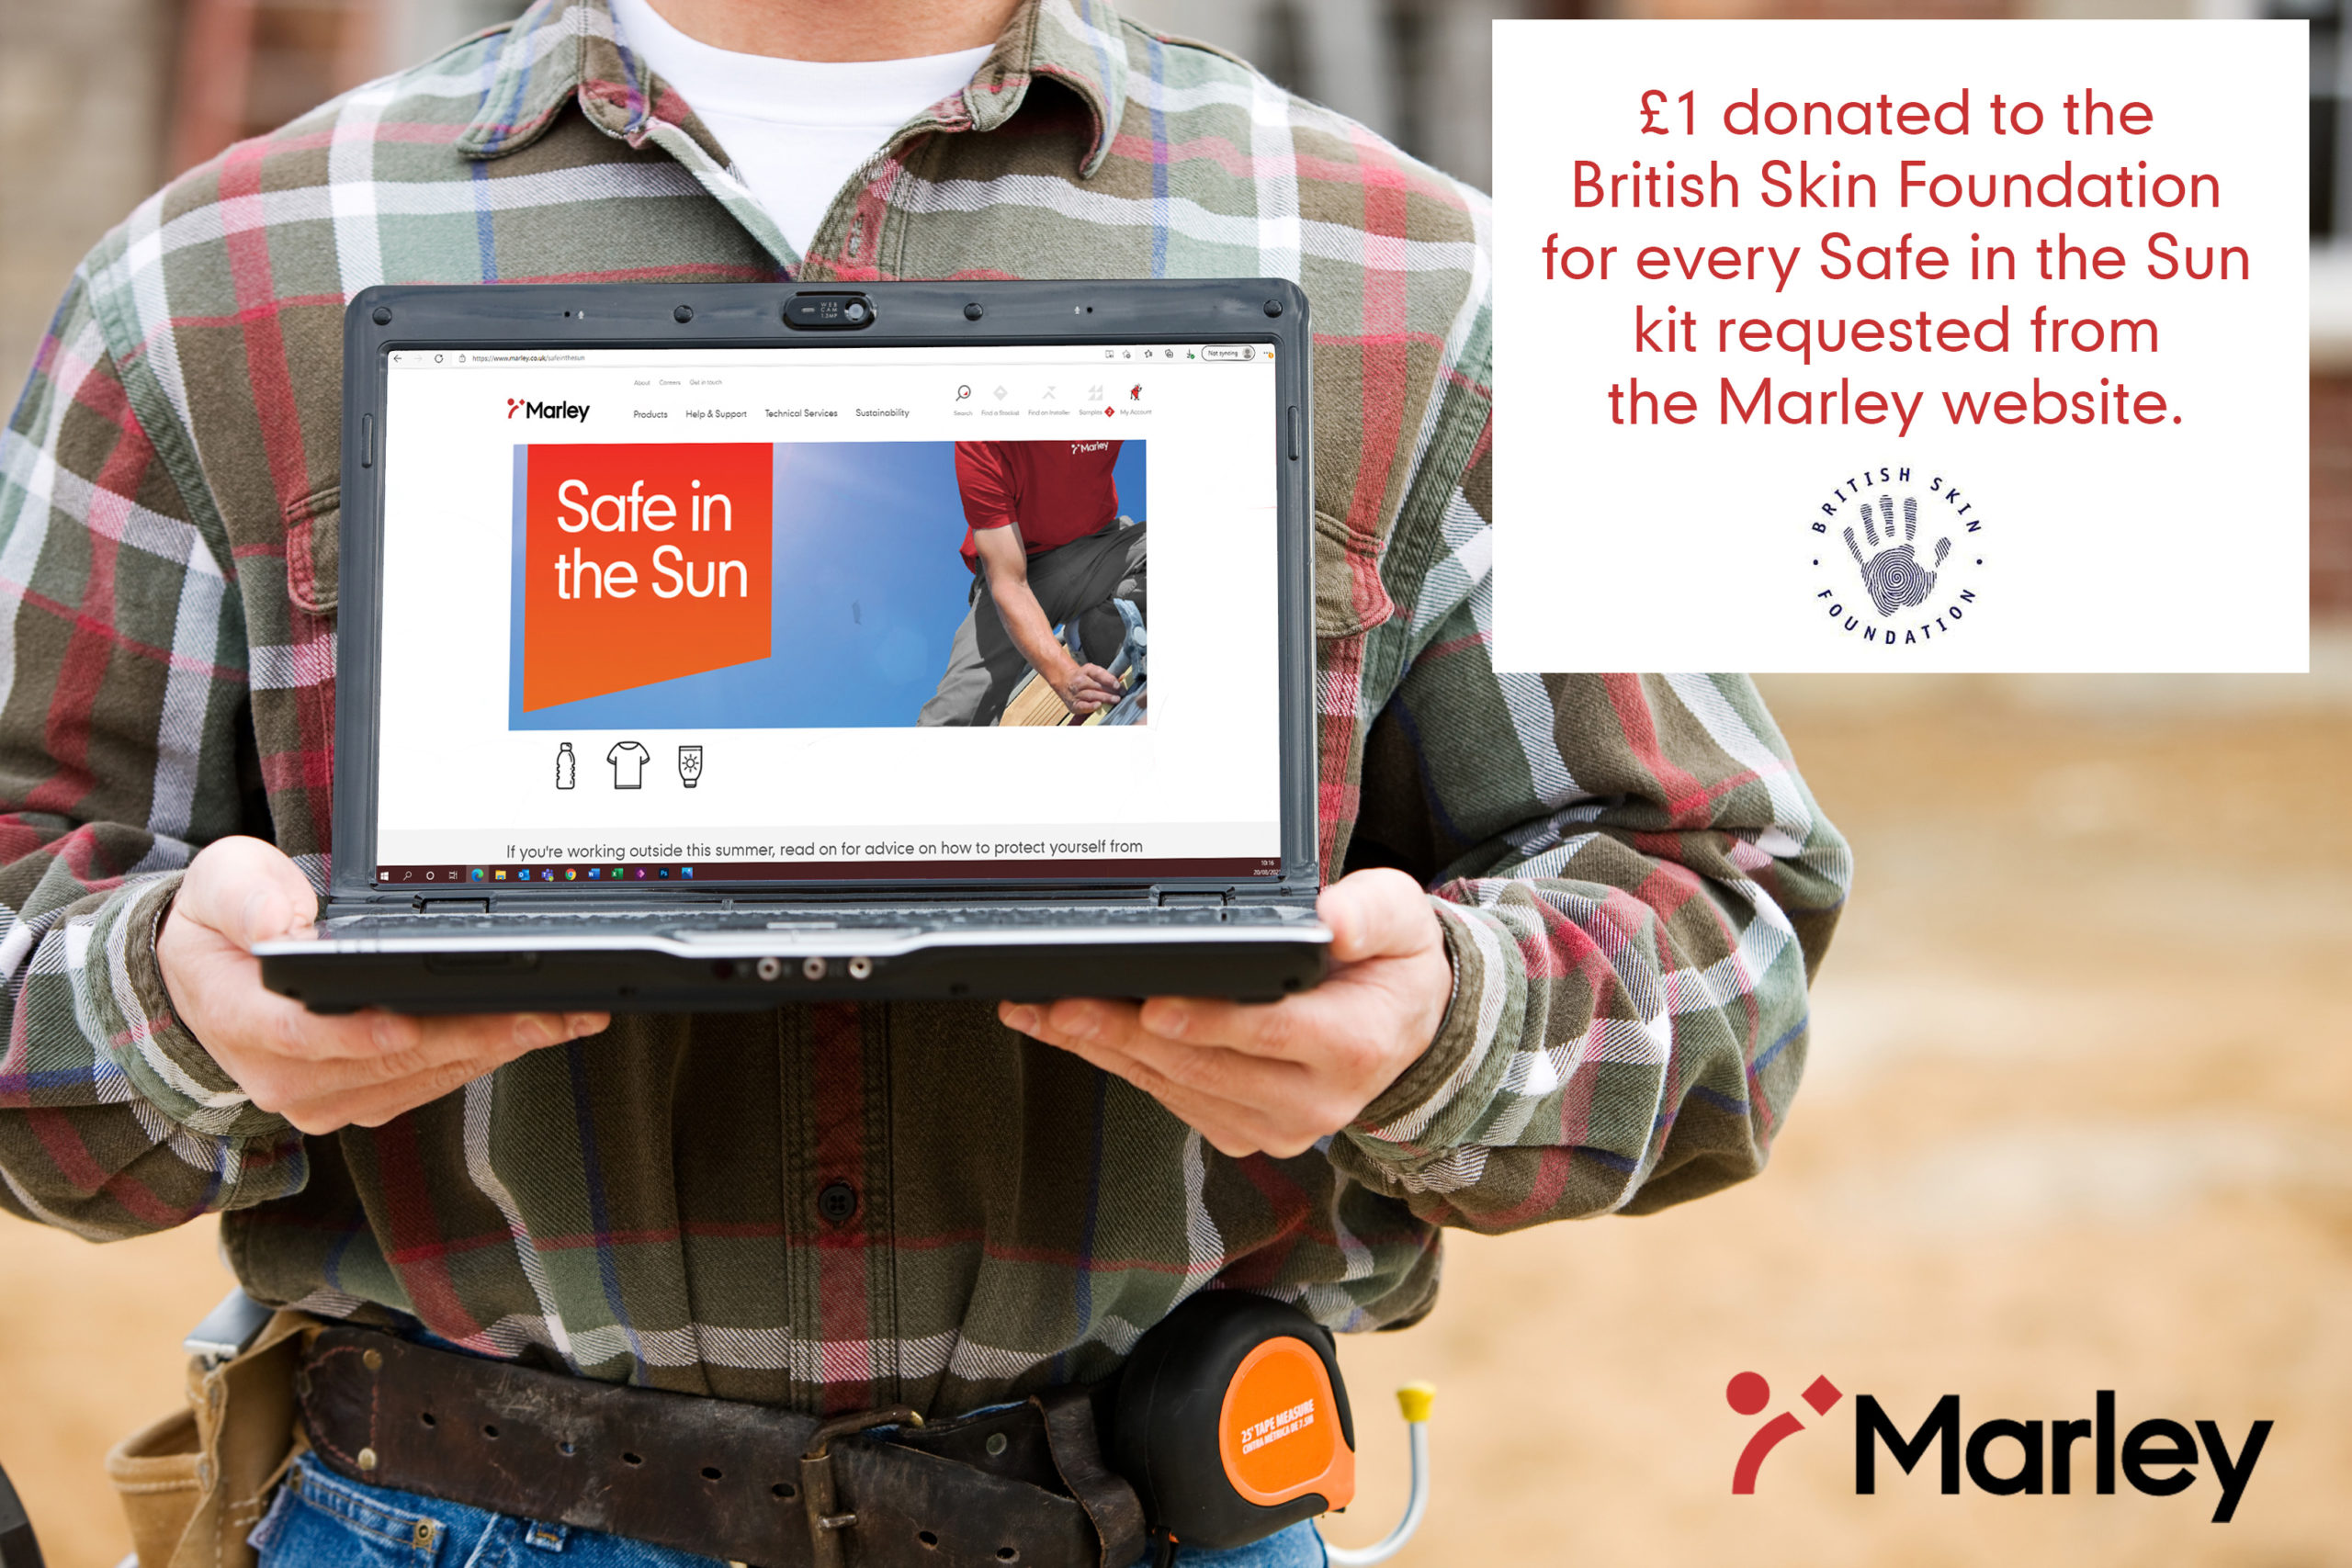 Marley's 'Safe In The Sun' campaign supports The British Skin Foundation